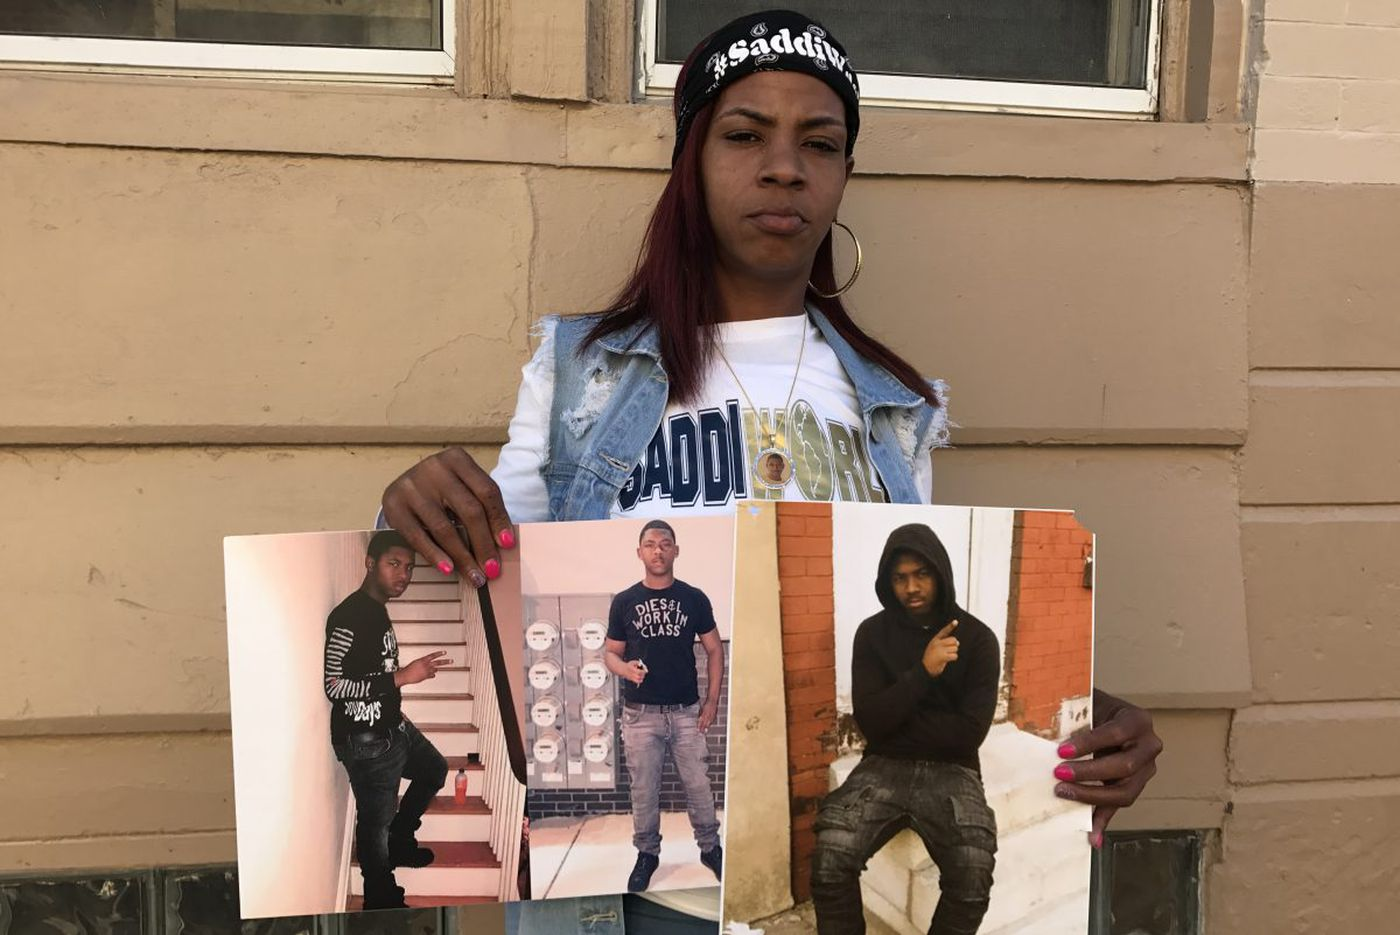 Another Philly mother waits for her son's killer to be caught | Helen Ubiñas